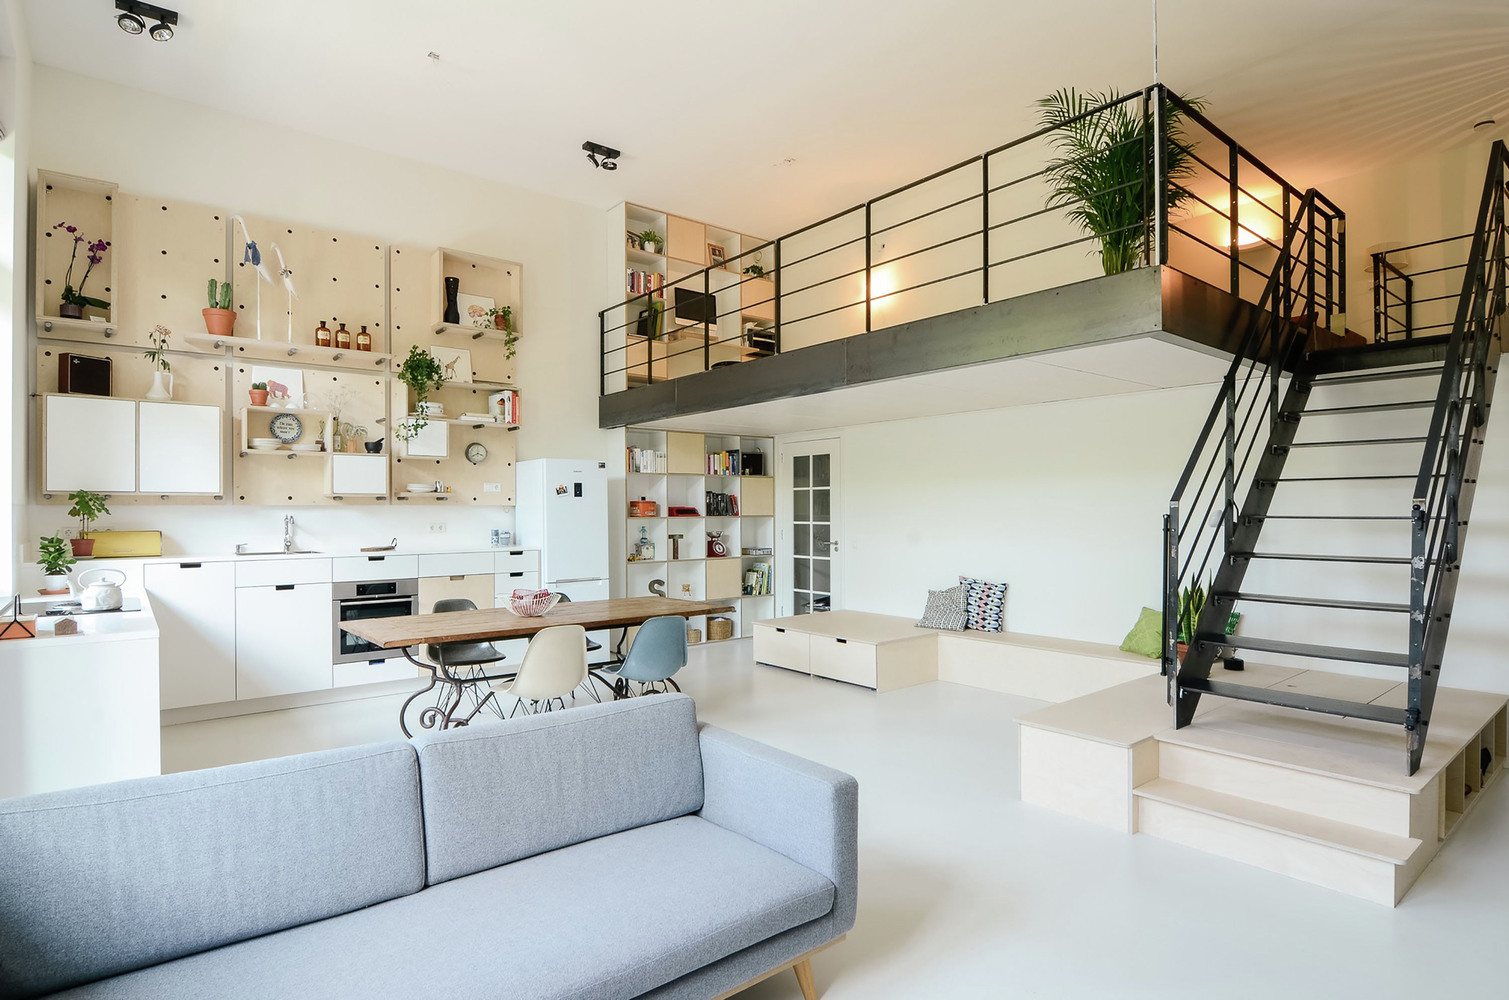 Apartment Conversion Standard Studio Casa Architecten